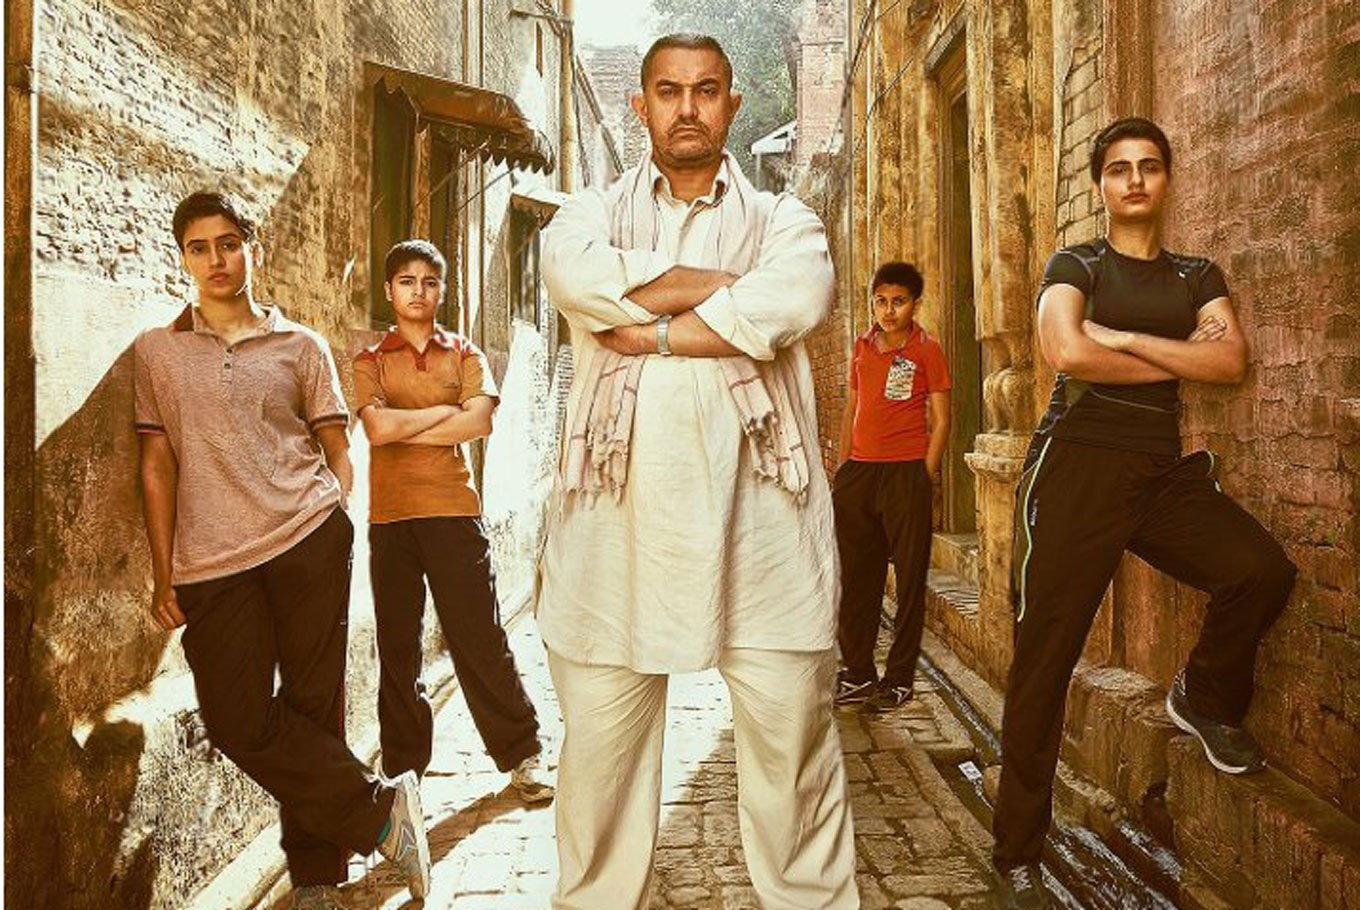 'Dangal', a potent and palpable sports drama